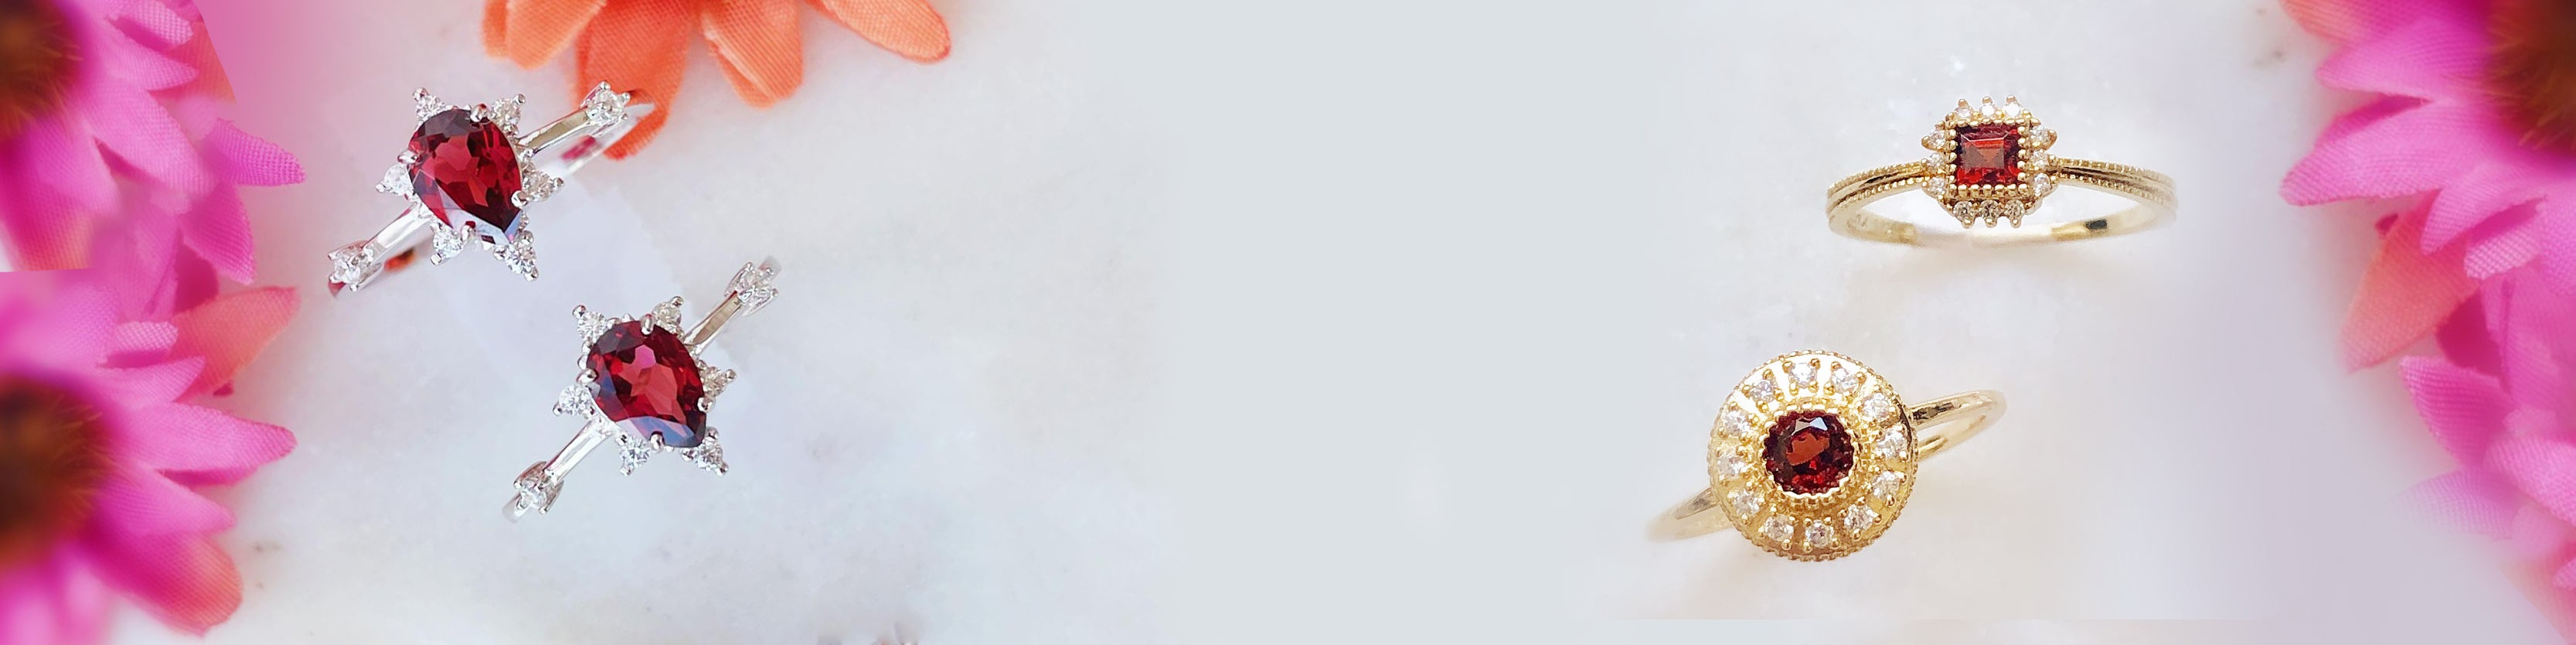 collection-banner-img